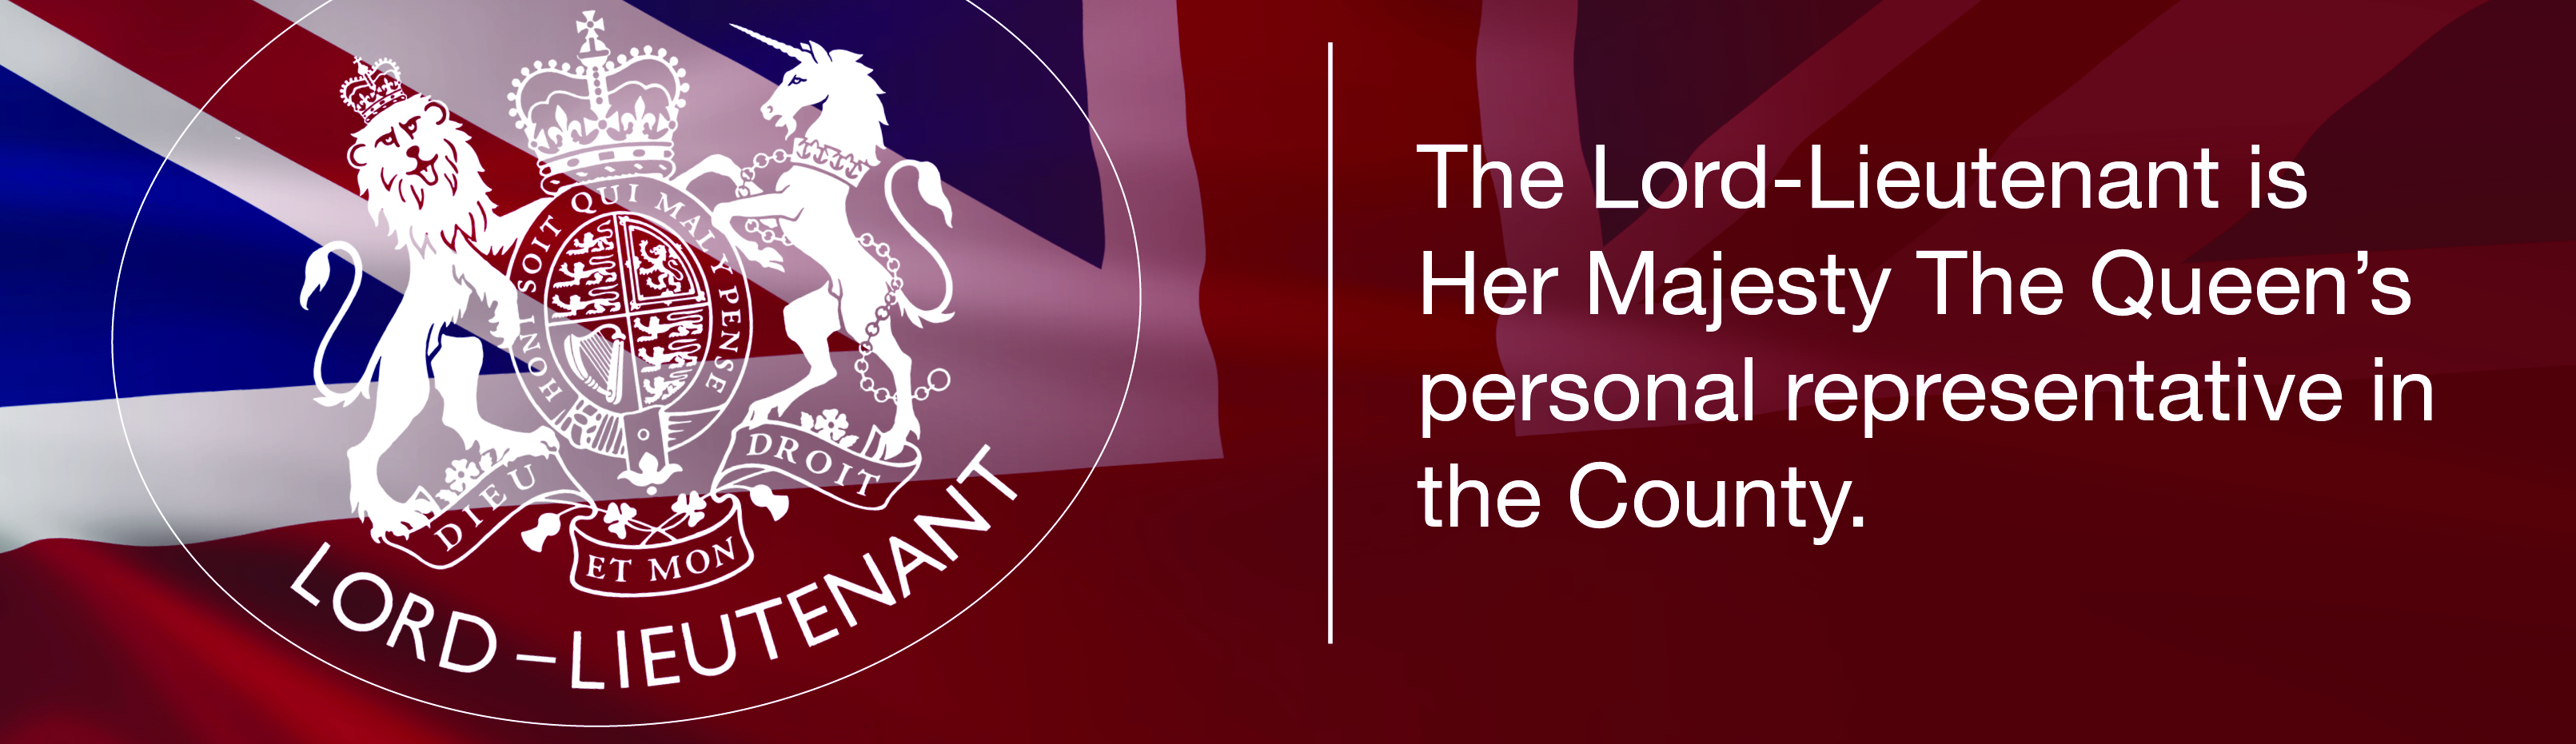 The Lord-Lieutenant is Her Majesty The Queen's personal representative in the County.